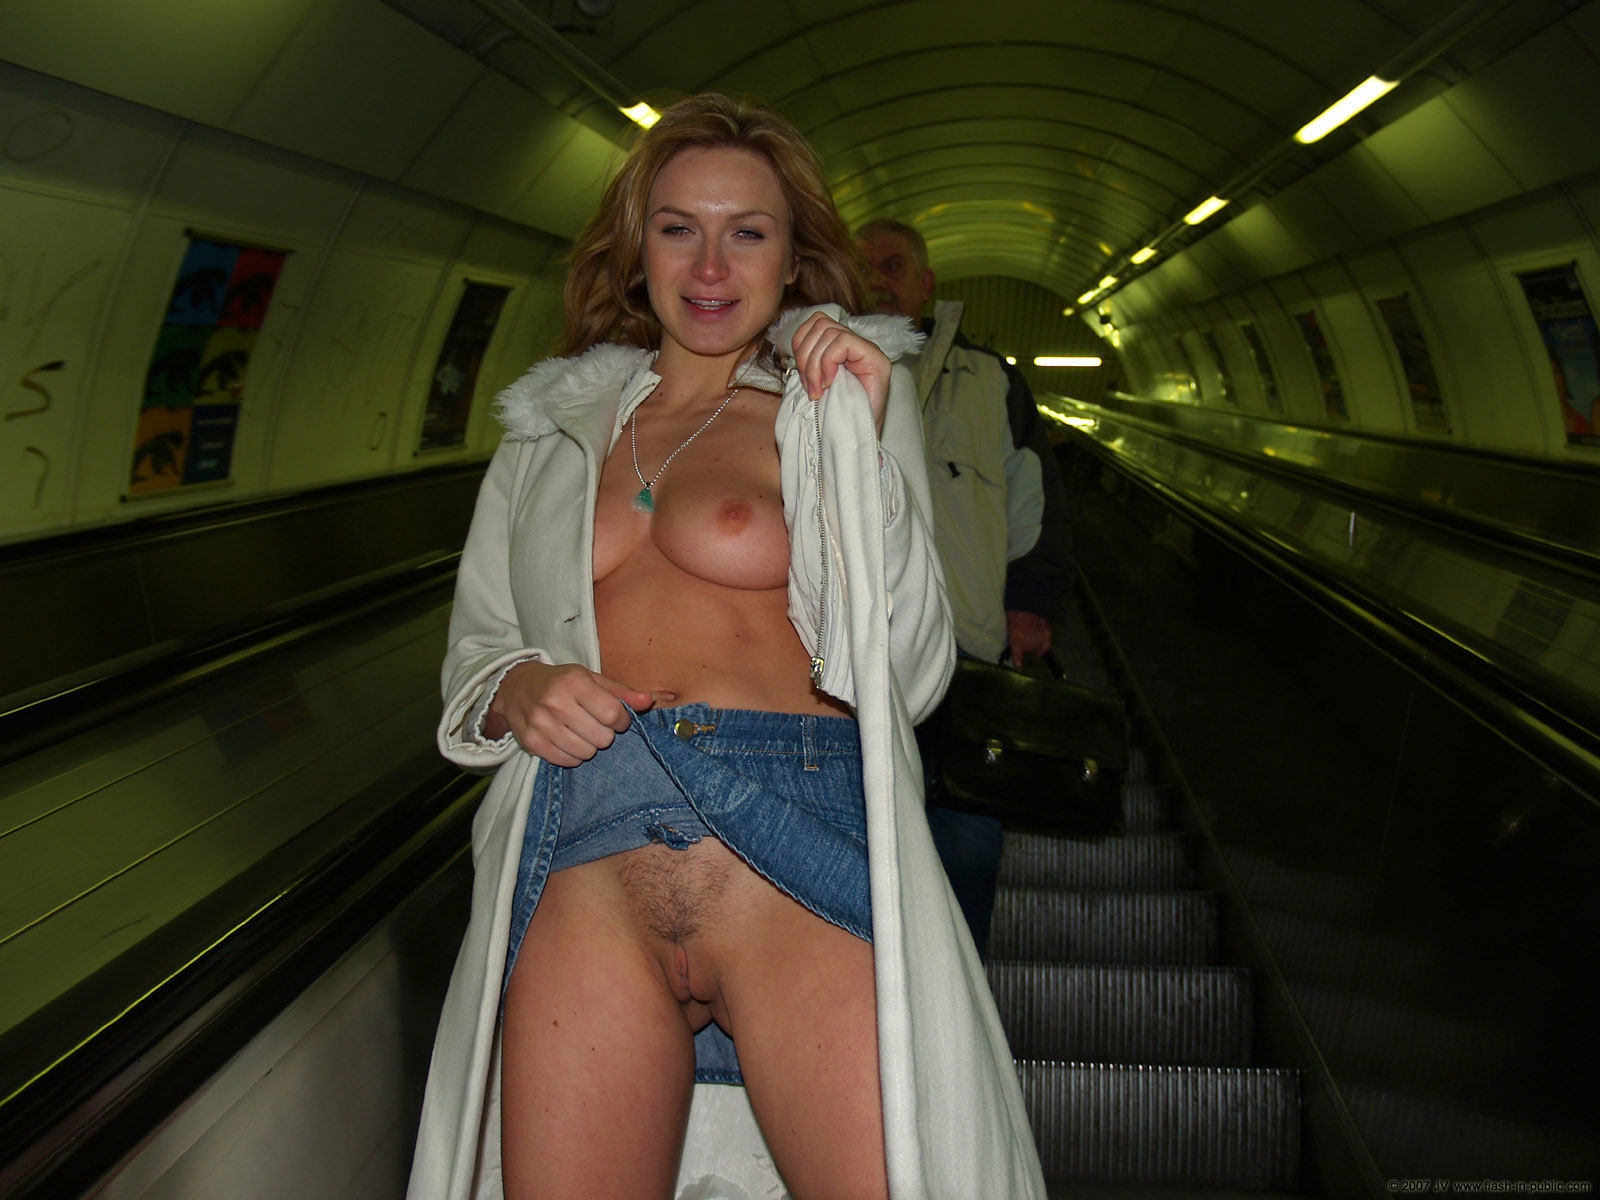 alena-n-jeans-skirt-nude-in-prague-flash-in-public-55